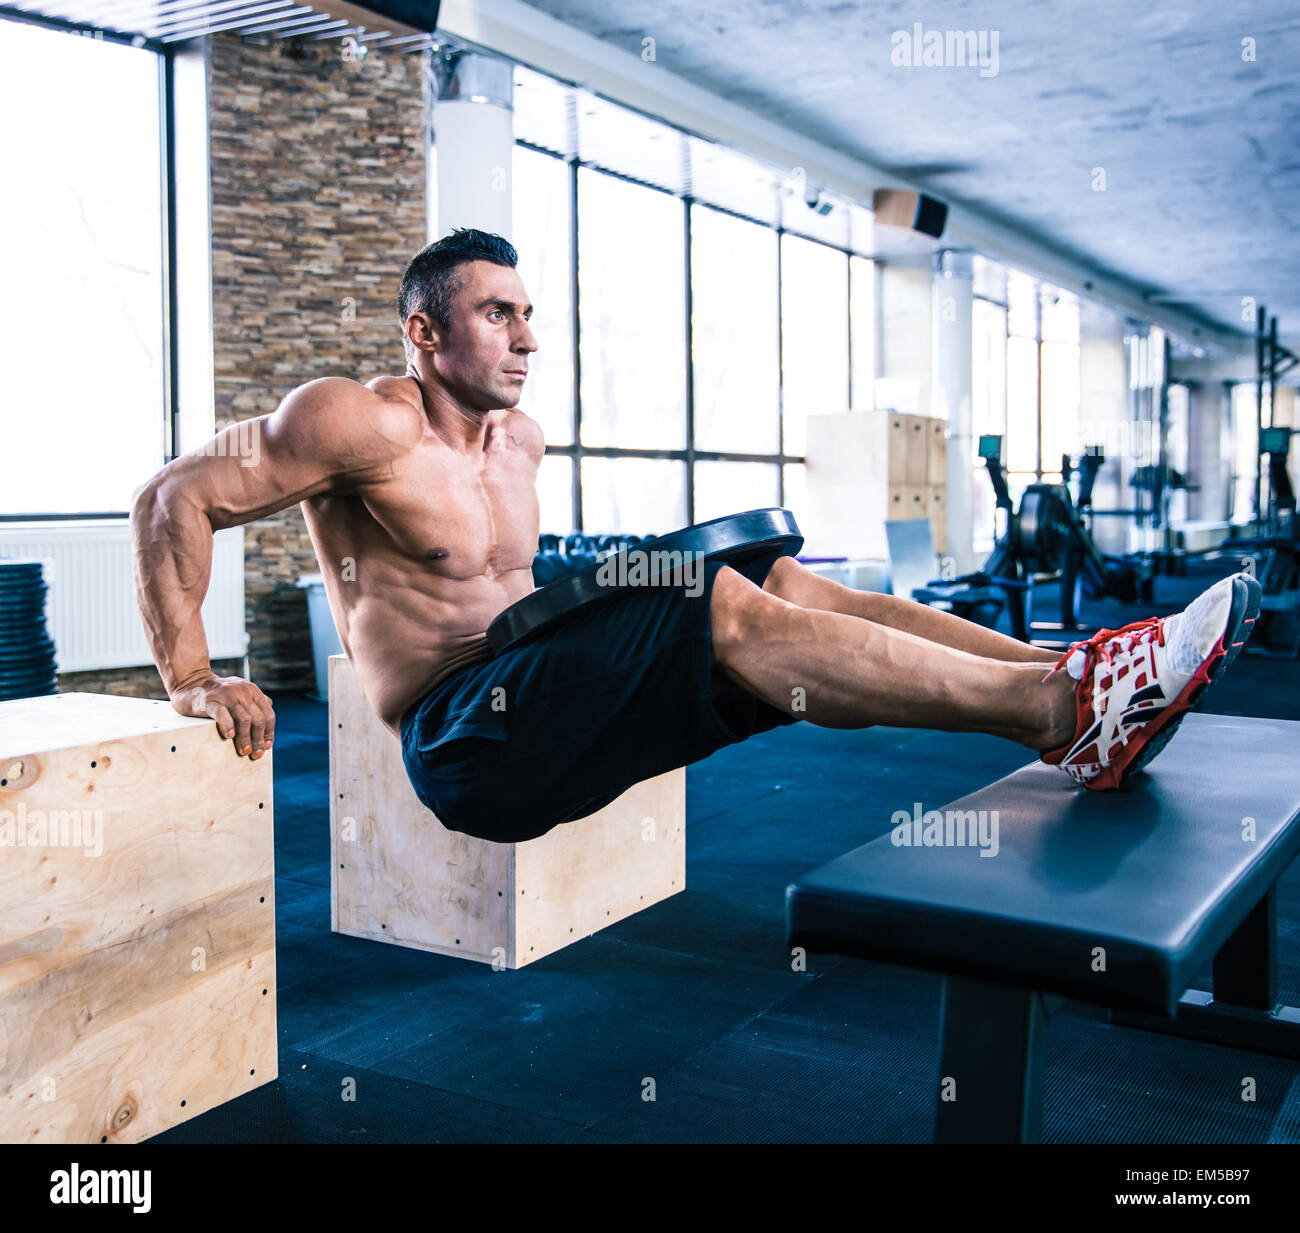 Handsome muscular man workout at crossfit gym - Stock Image